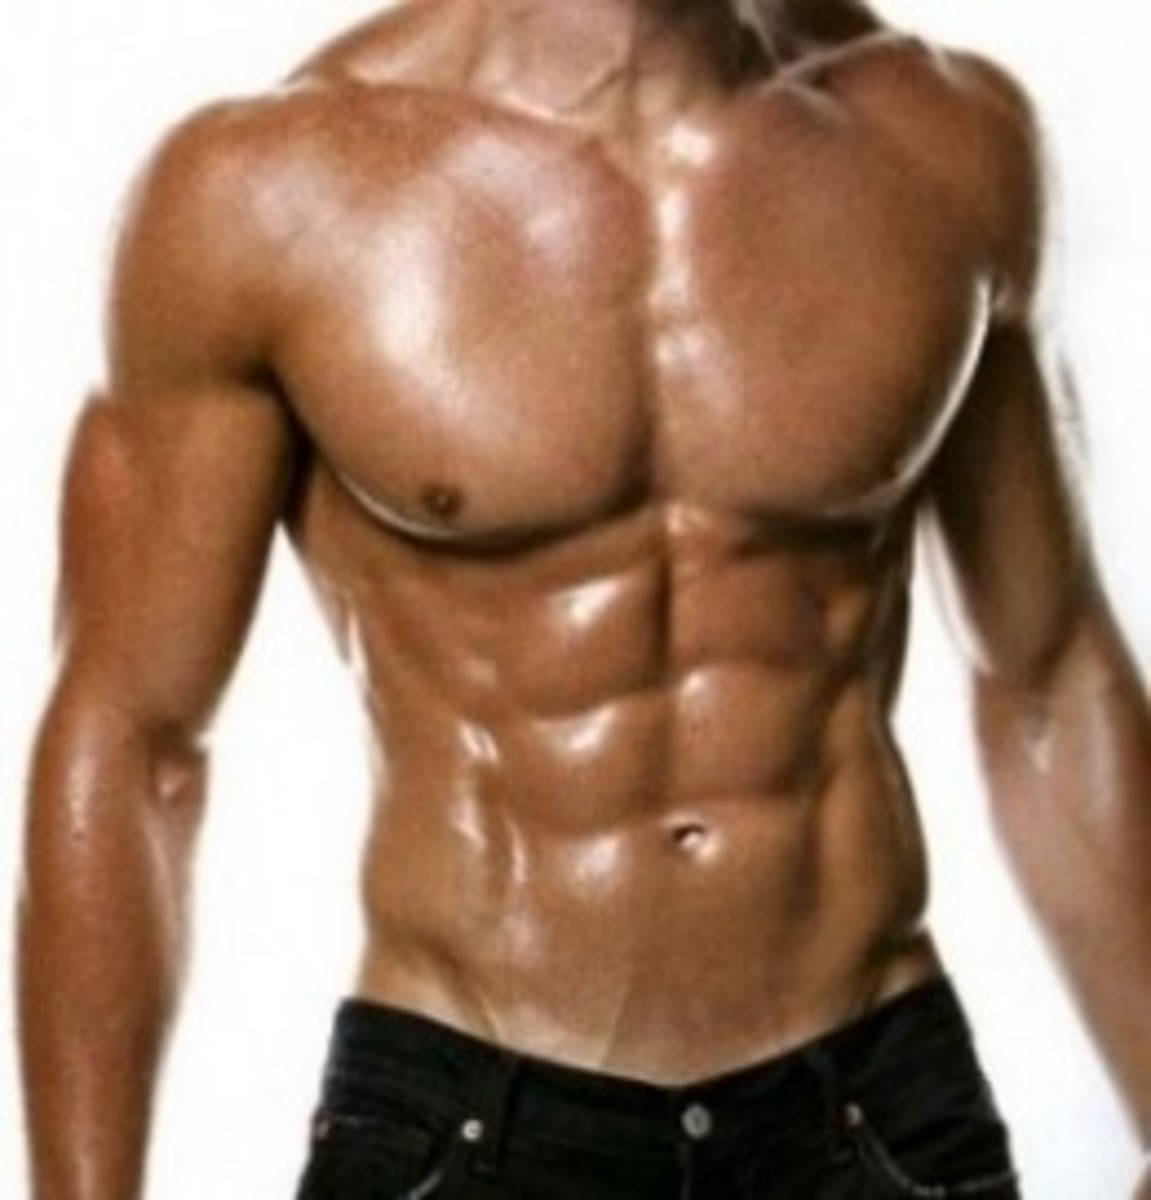 Best Exercises for Six Pack abs. How to do a proper Ab workout routine?